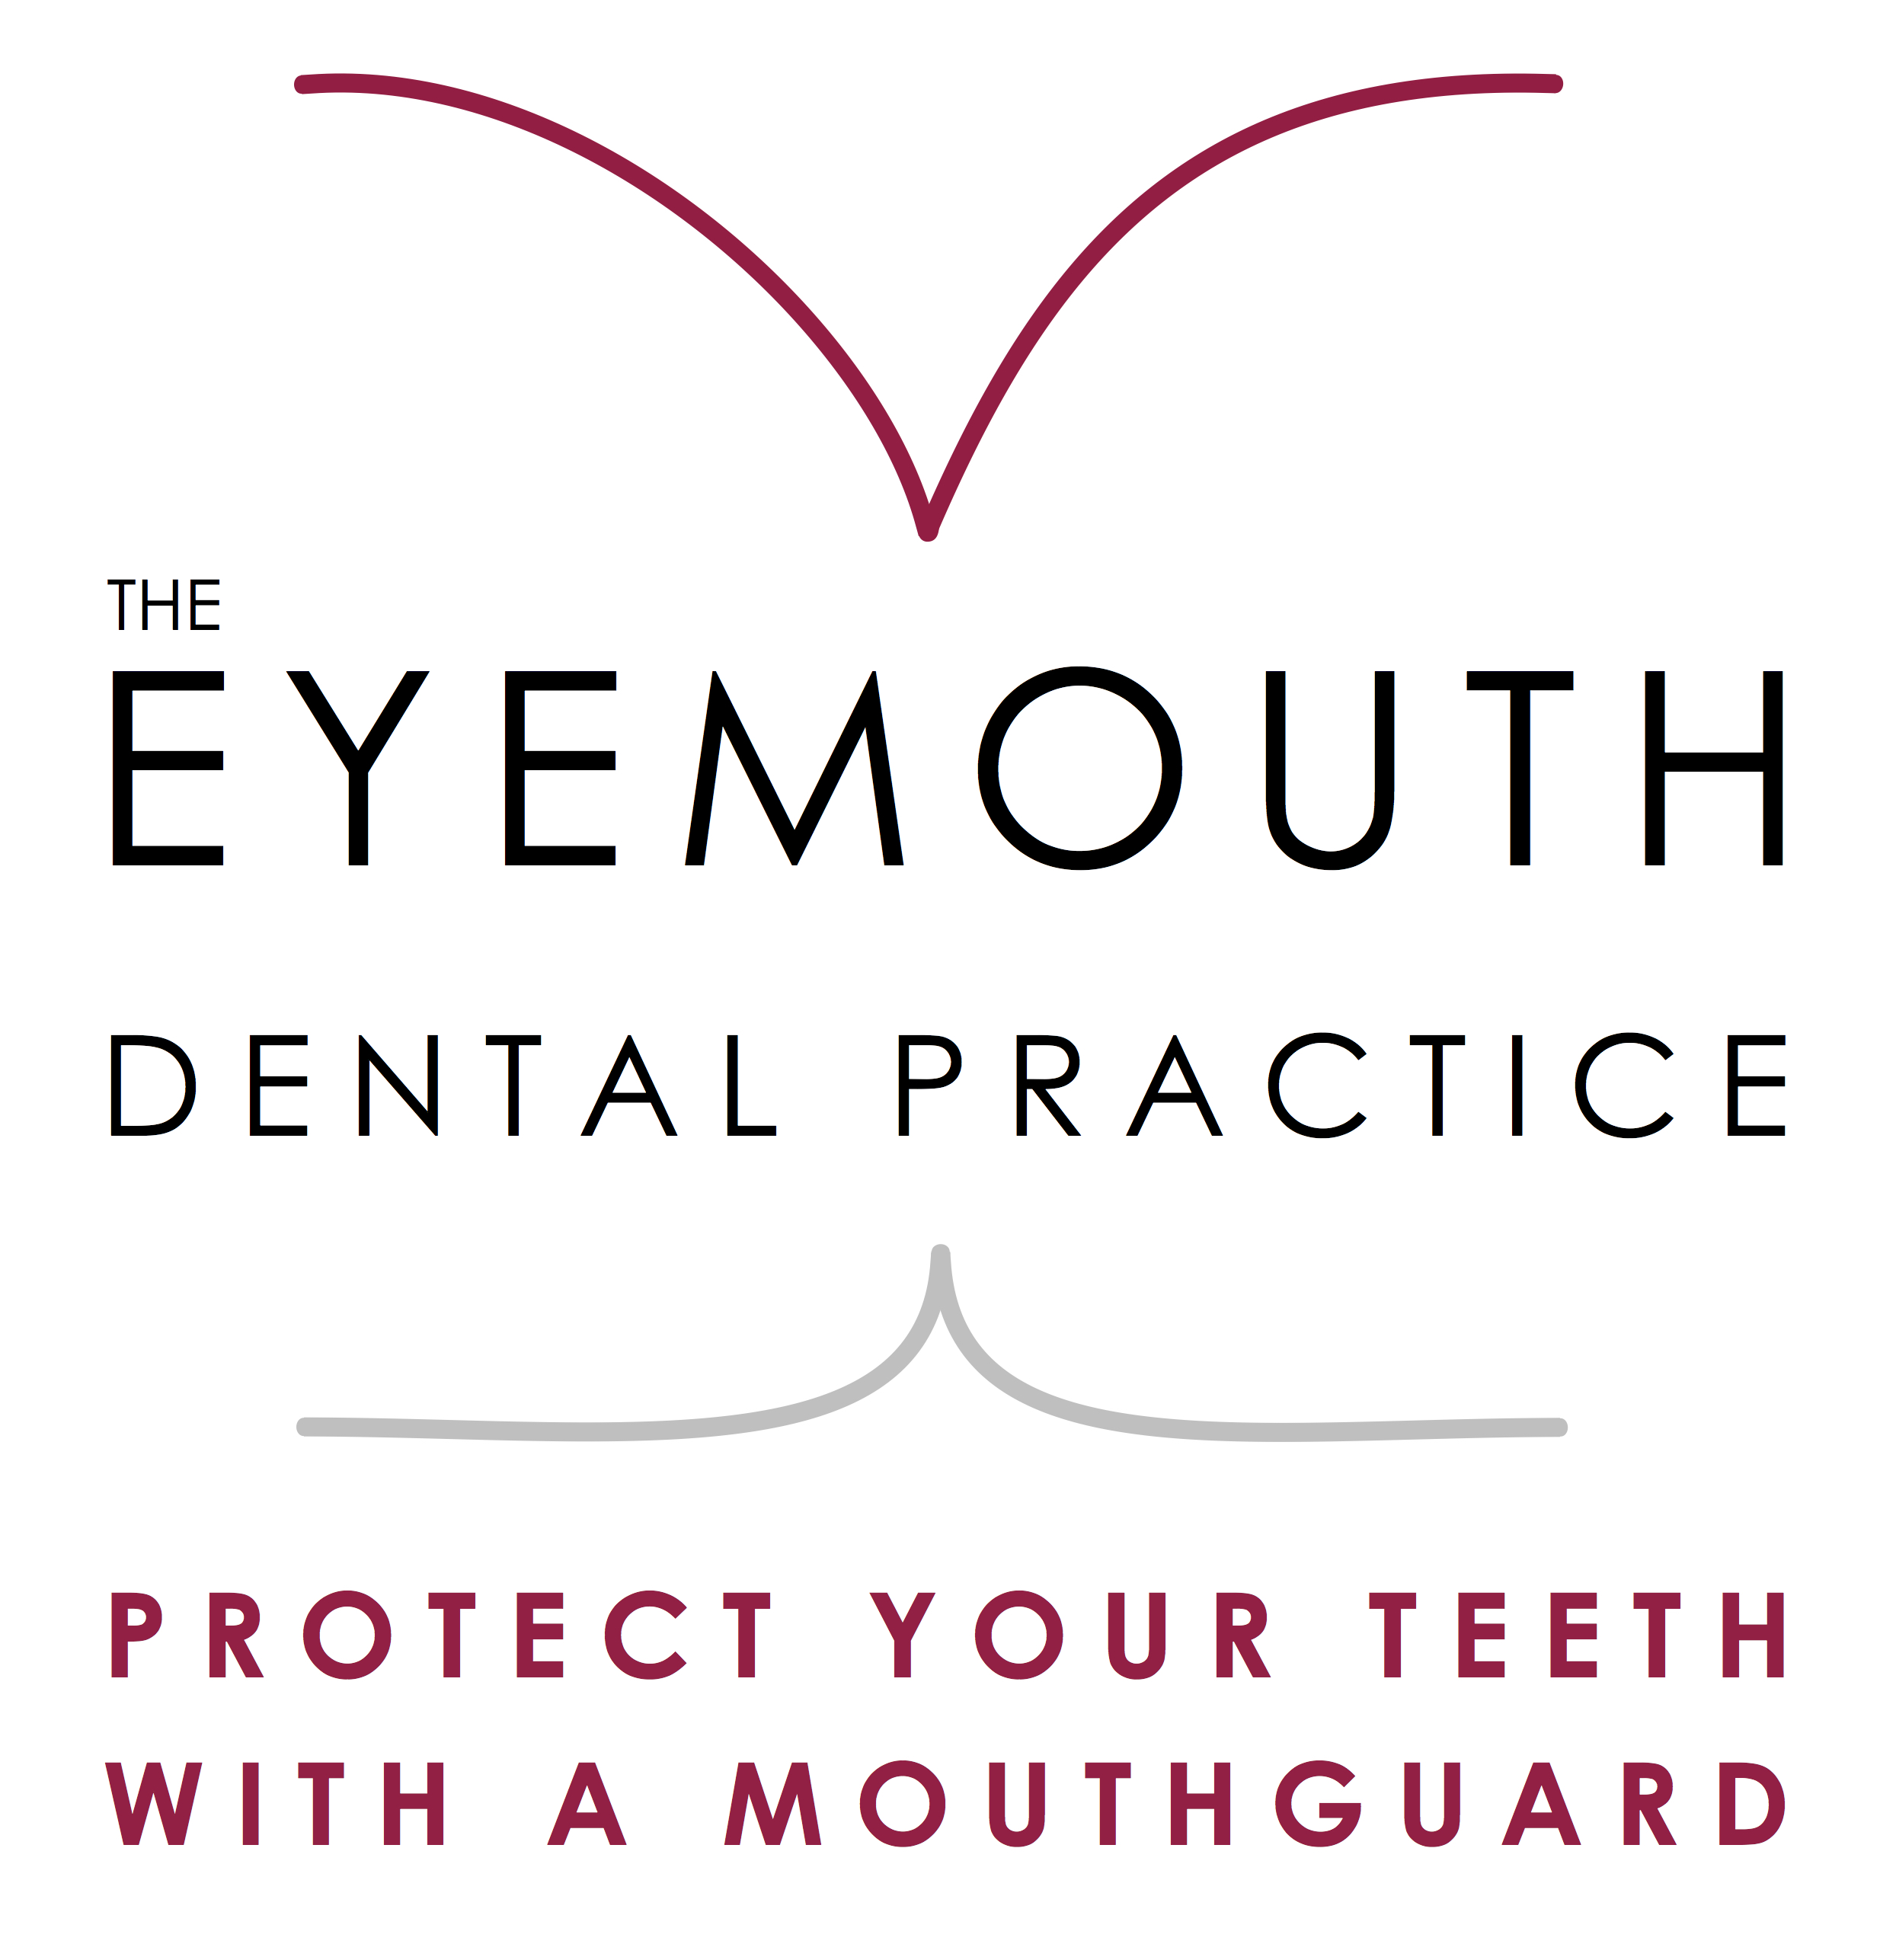 The Eyemouth Dental Practice